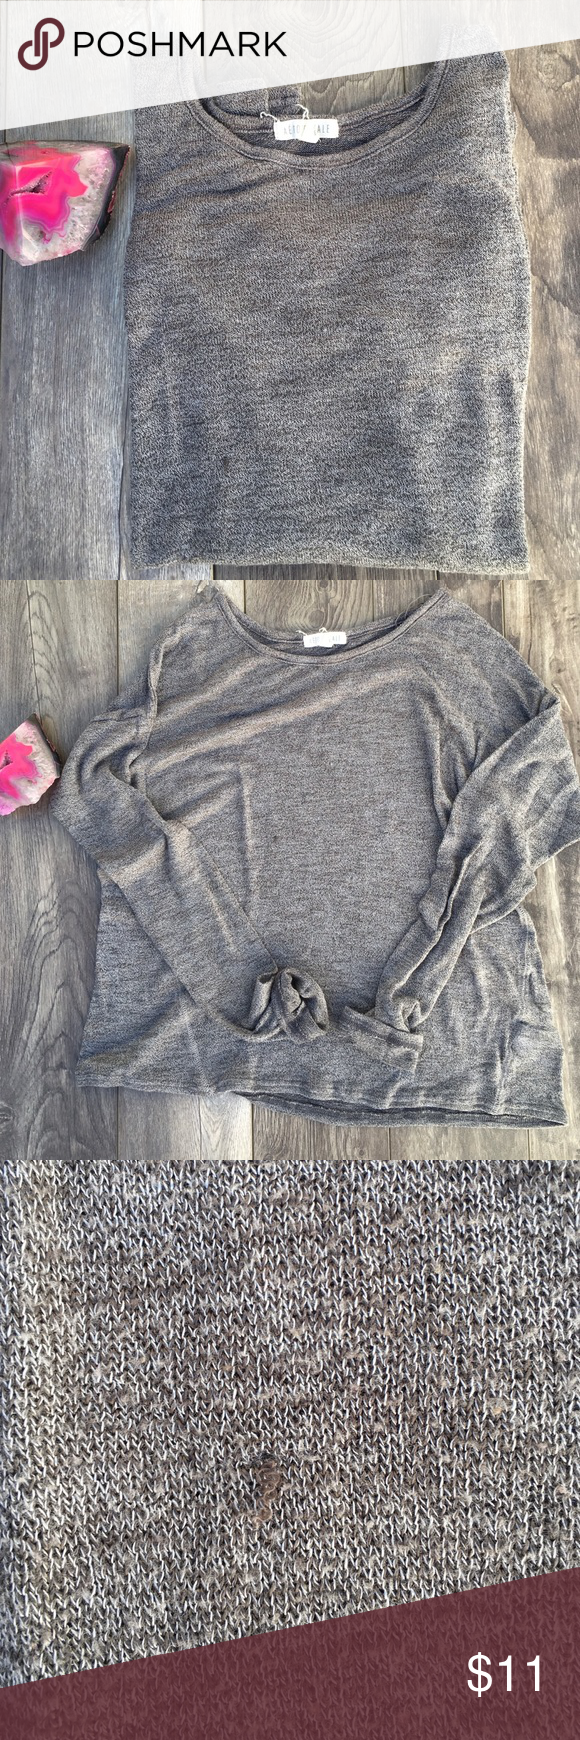 Lightweight Sweater Gray lightweight Knit Sweater small blemish where thread is coming out. Aeropostale Sweaters Crew & Scoop Necks